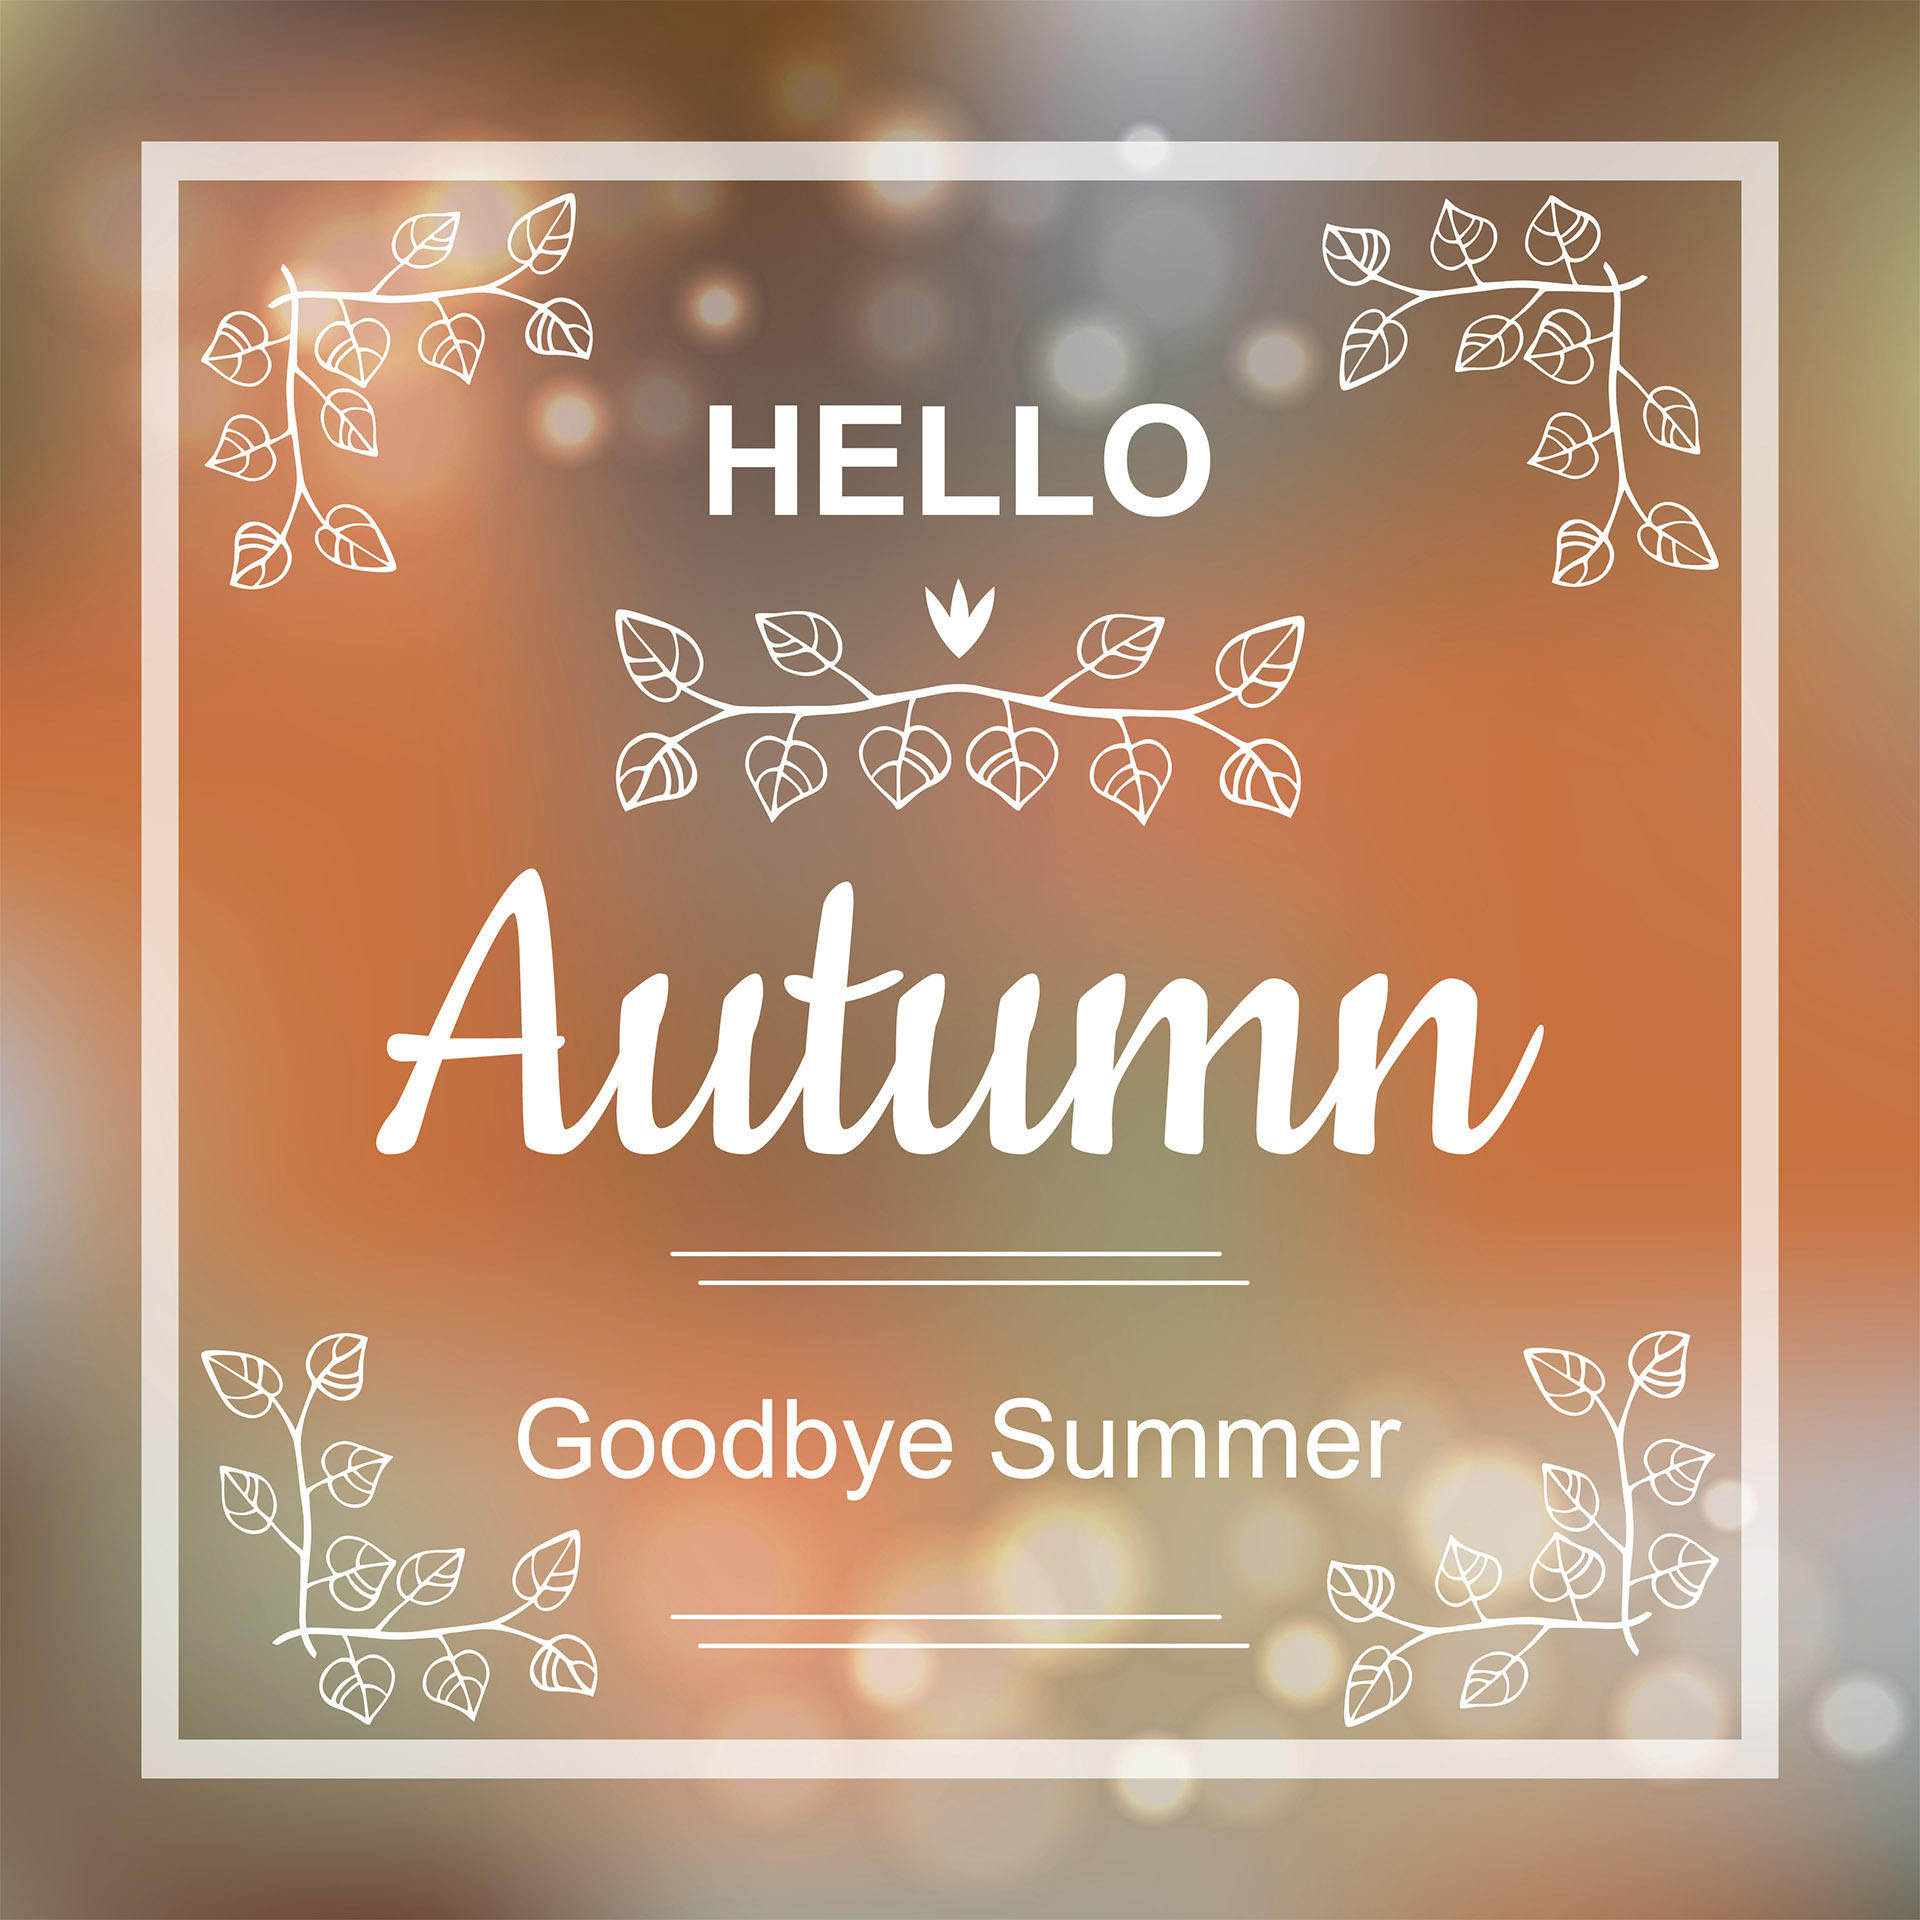 First Day Of Fall Graphic Message for Digital Signage Communications